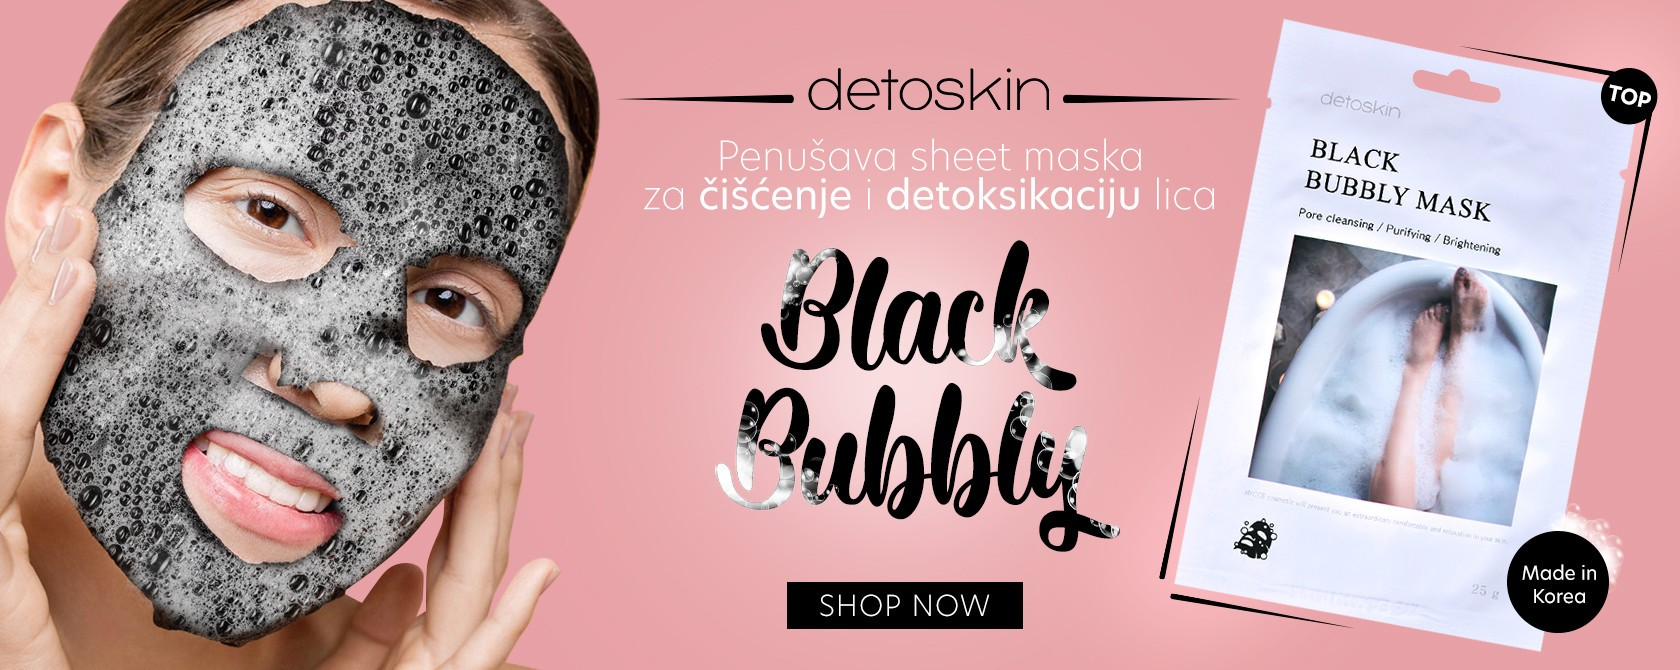 Black bubbly penusava maska